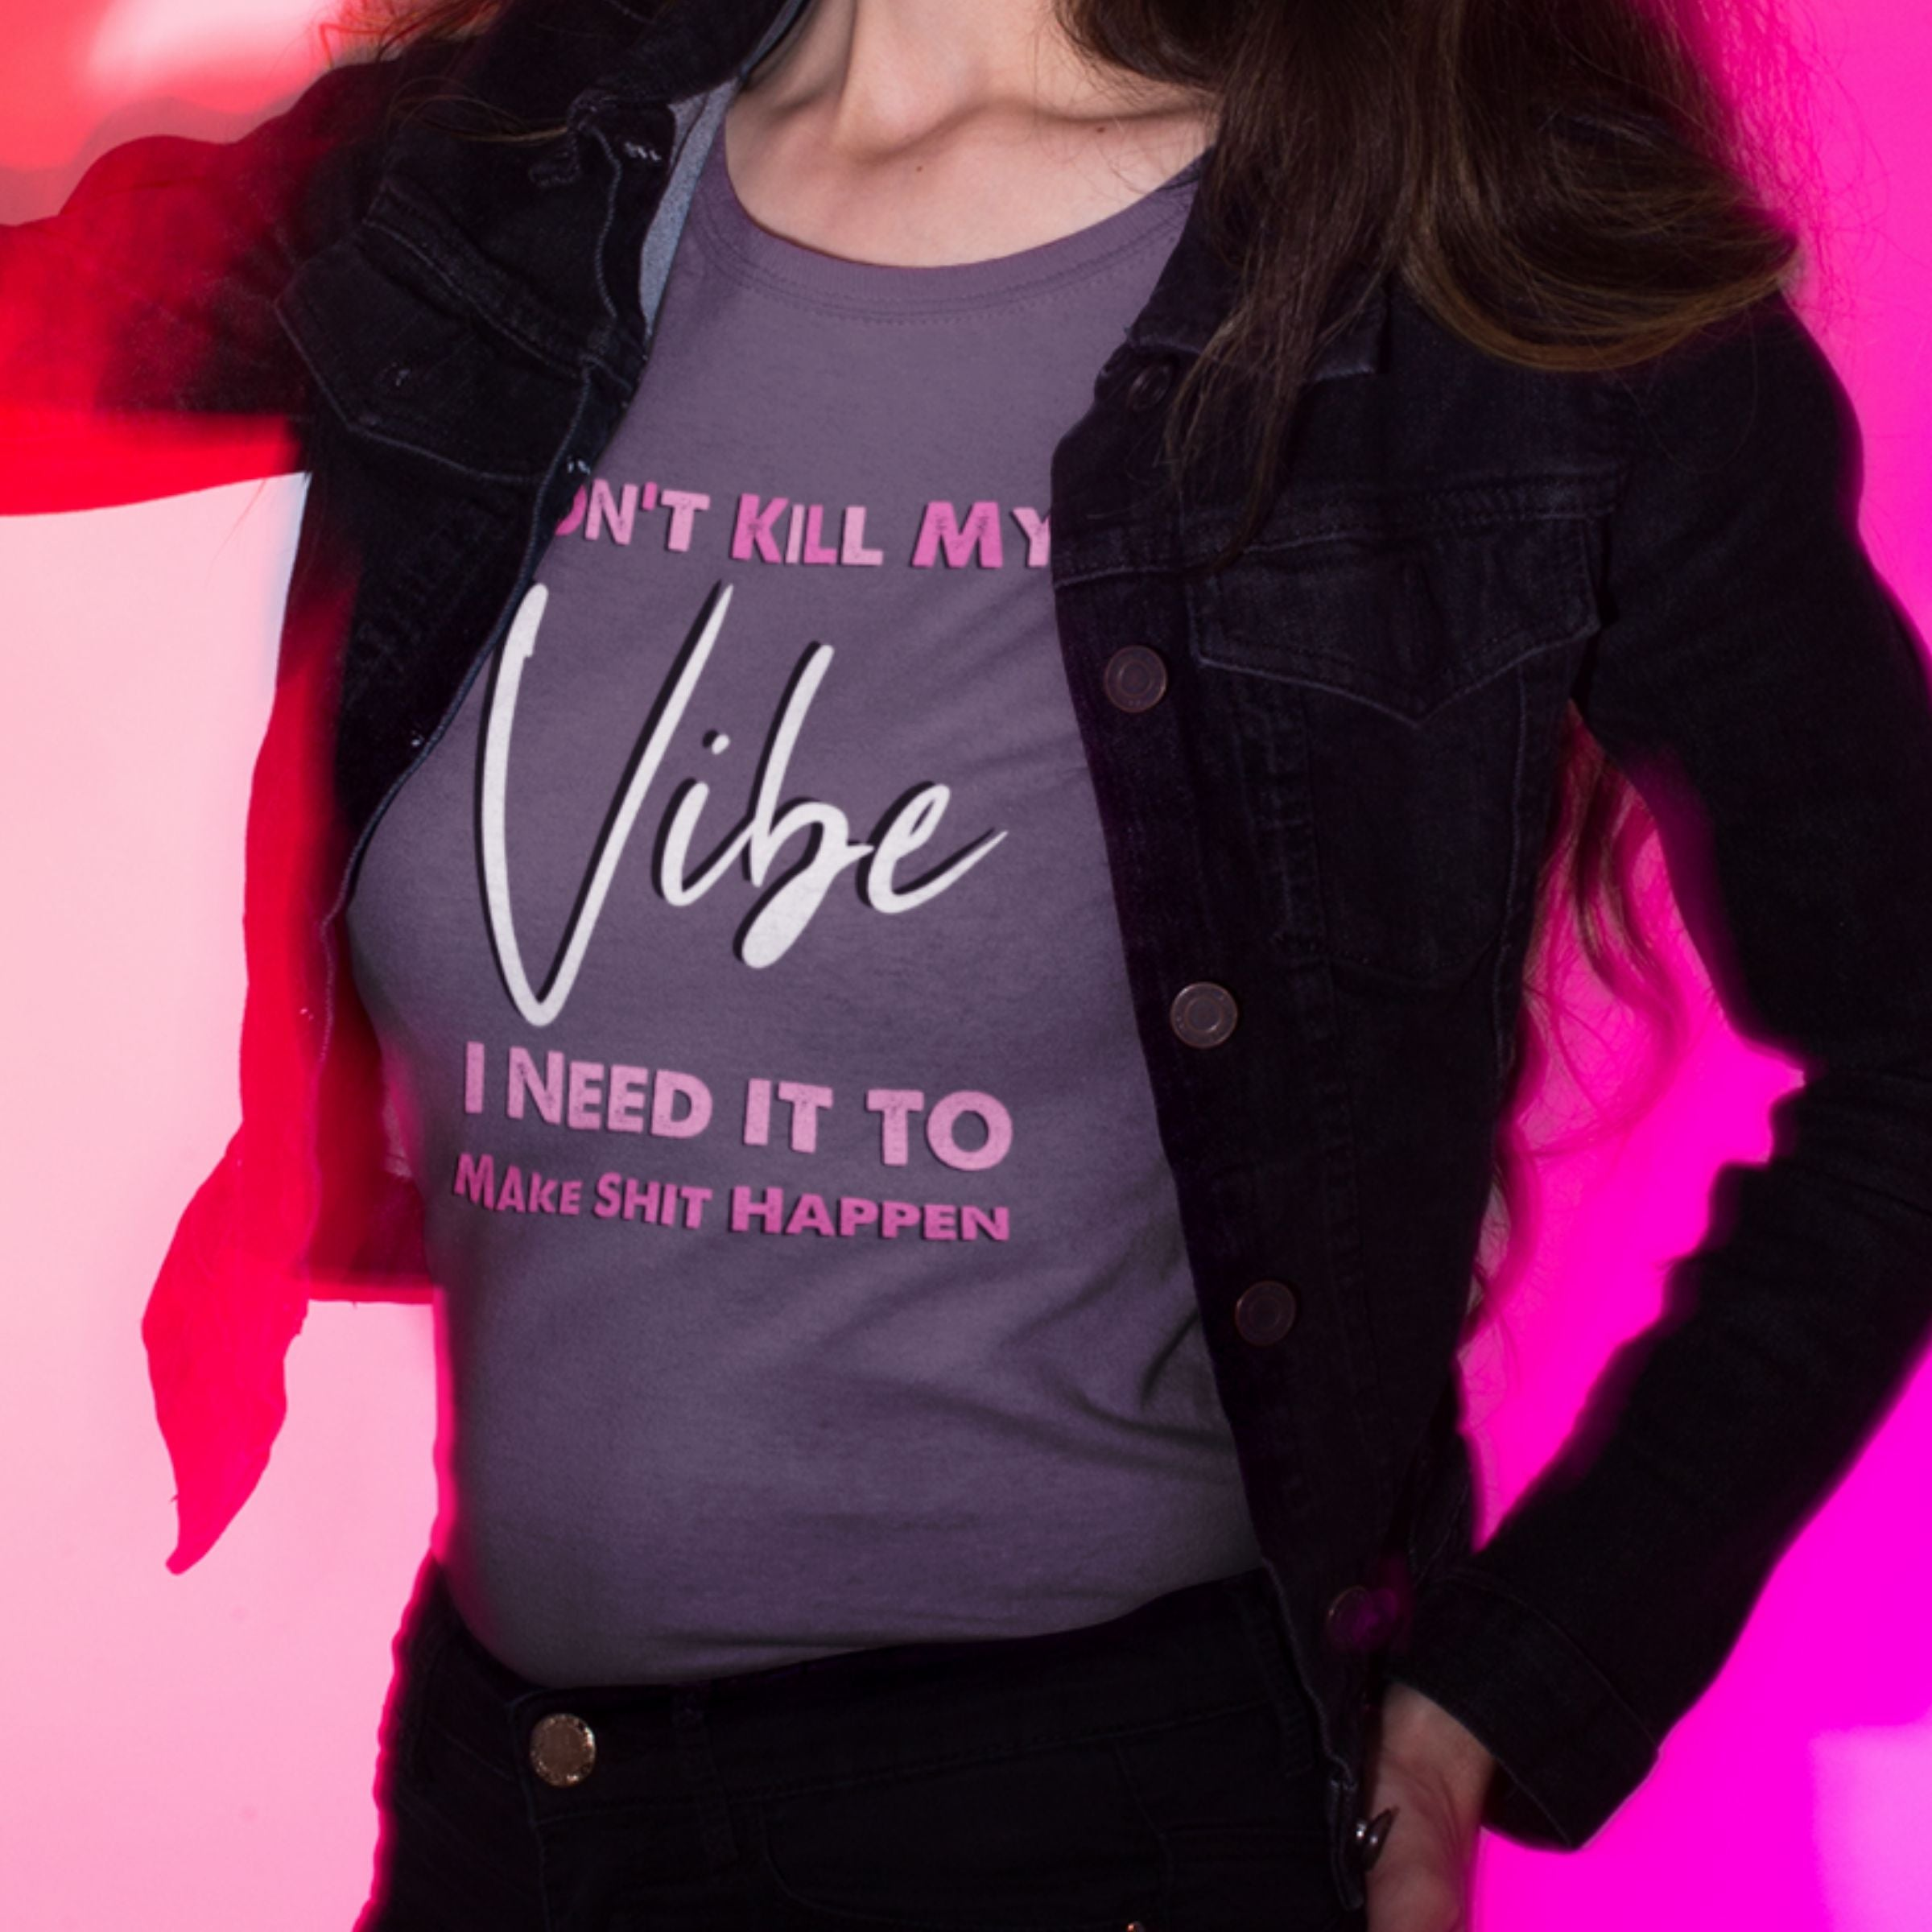 Wholesale :: Don't Kill My Vibe - Pink-Shop-Wholesale-Womens-Boutique-Custom-Graphic-Tees-Branding-Gifts